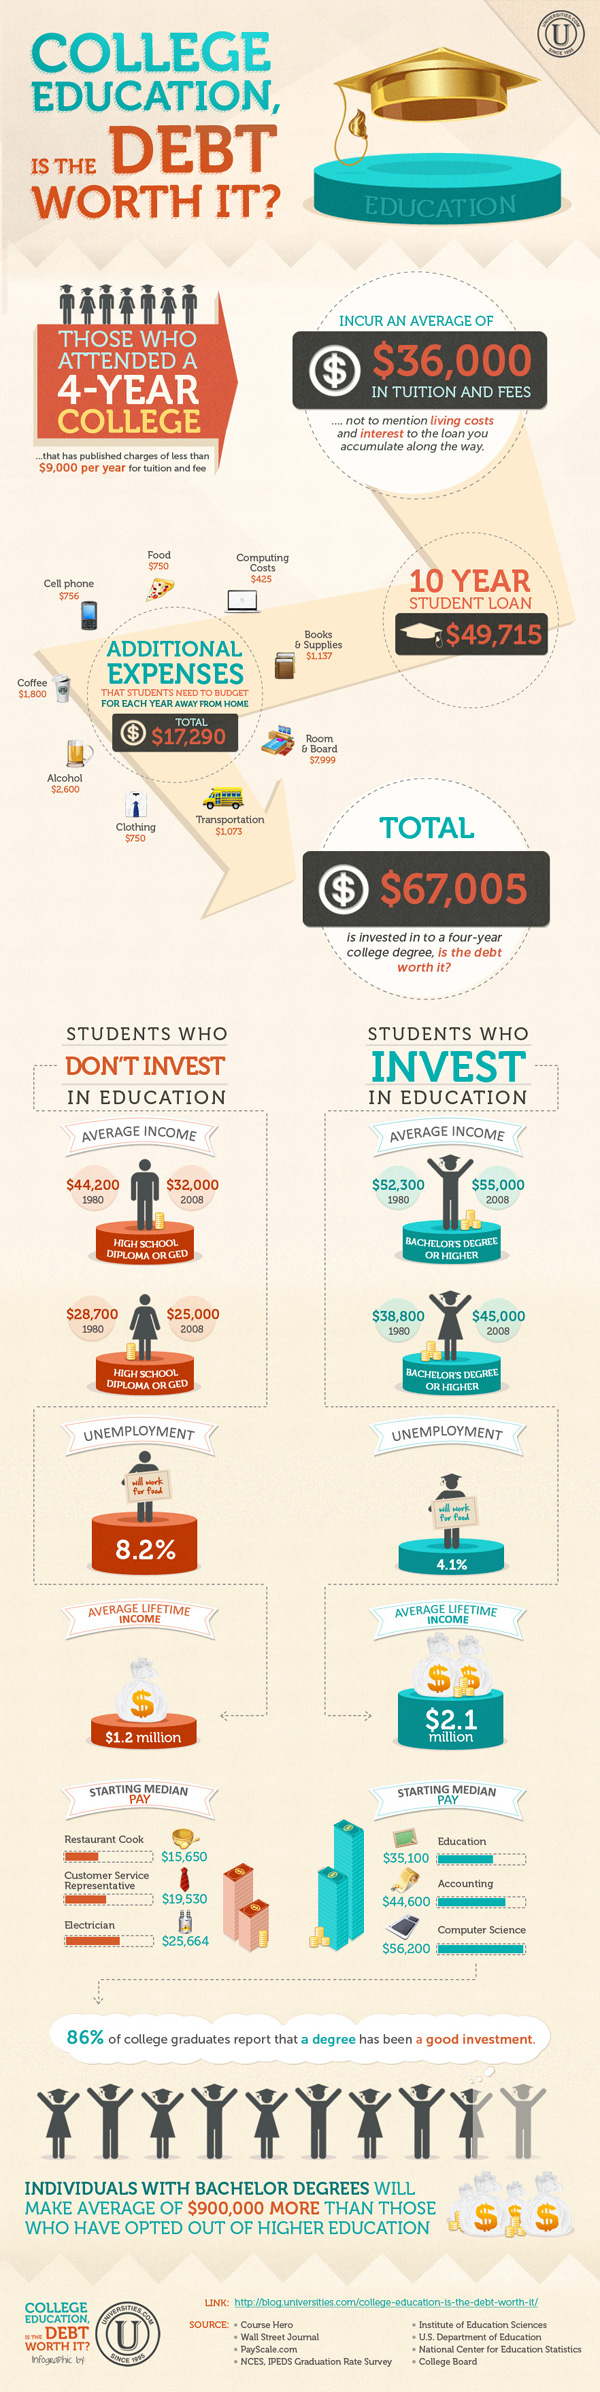 College Education Debt Infographic